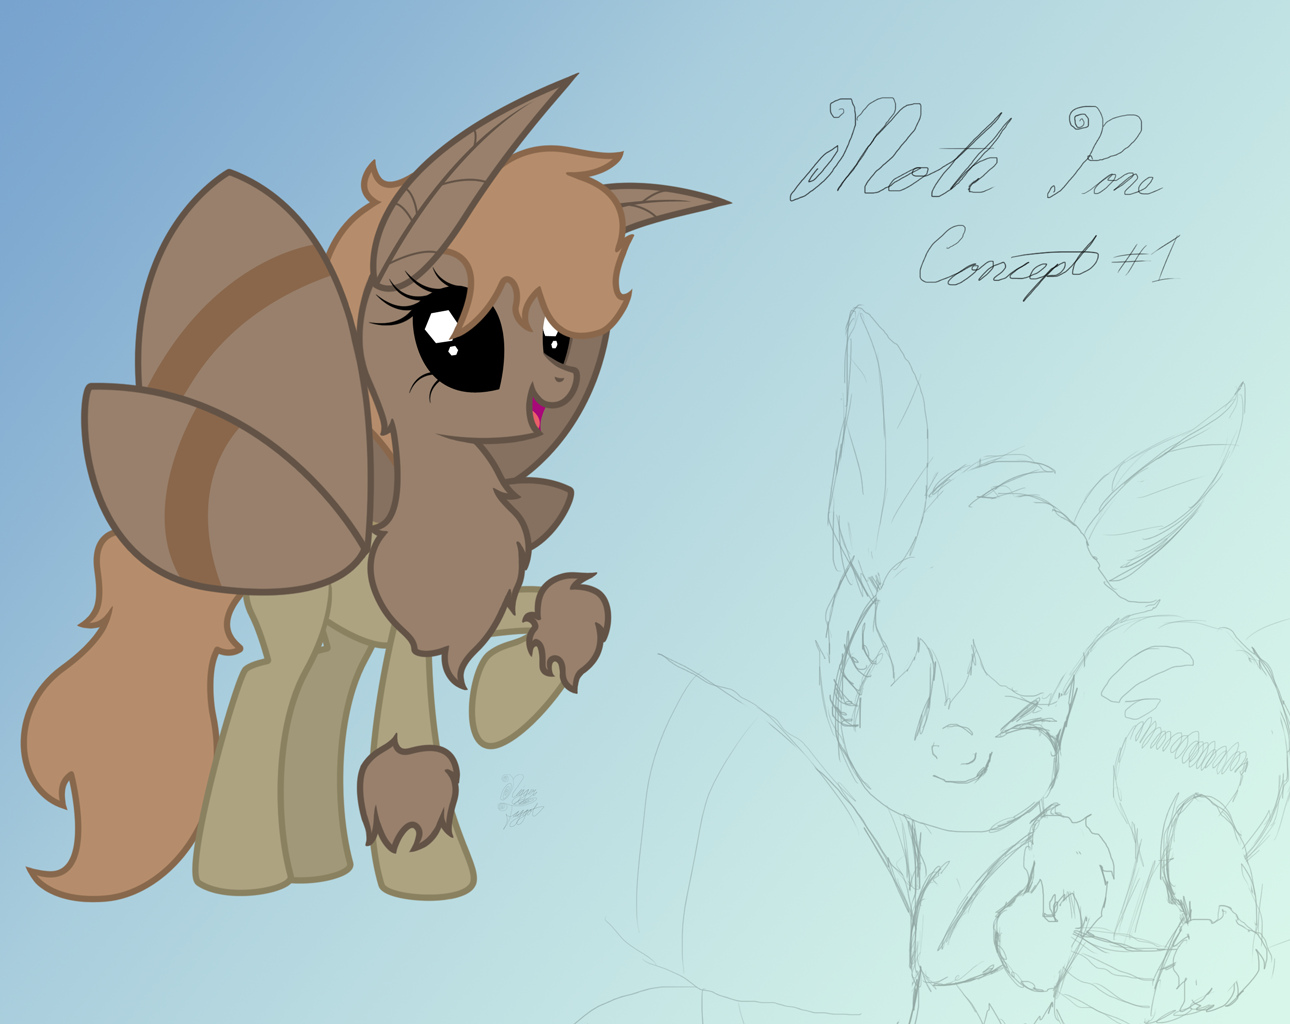 moth_pone_concept__1_by_facelessjr-d66t8